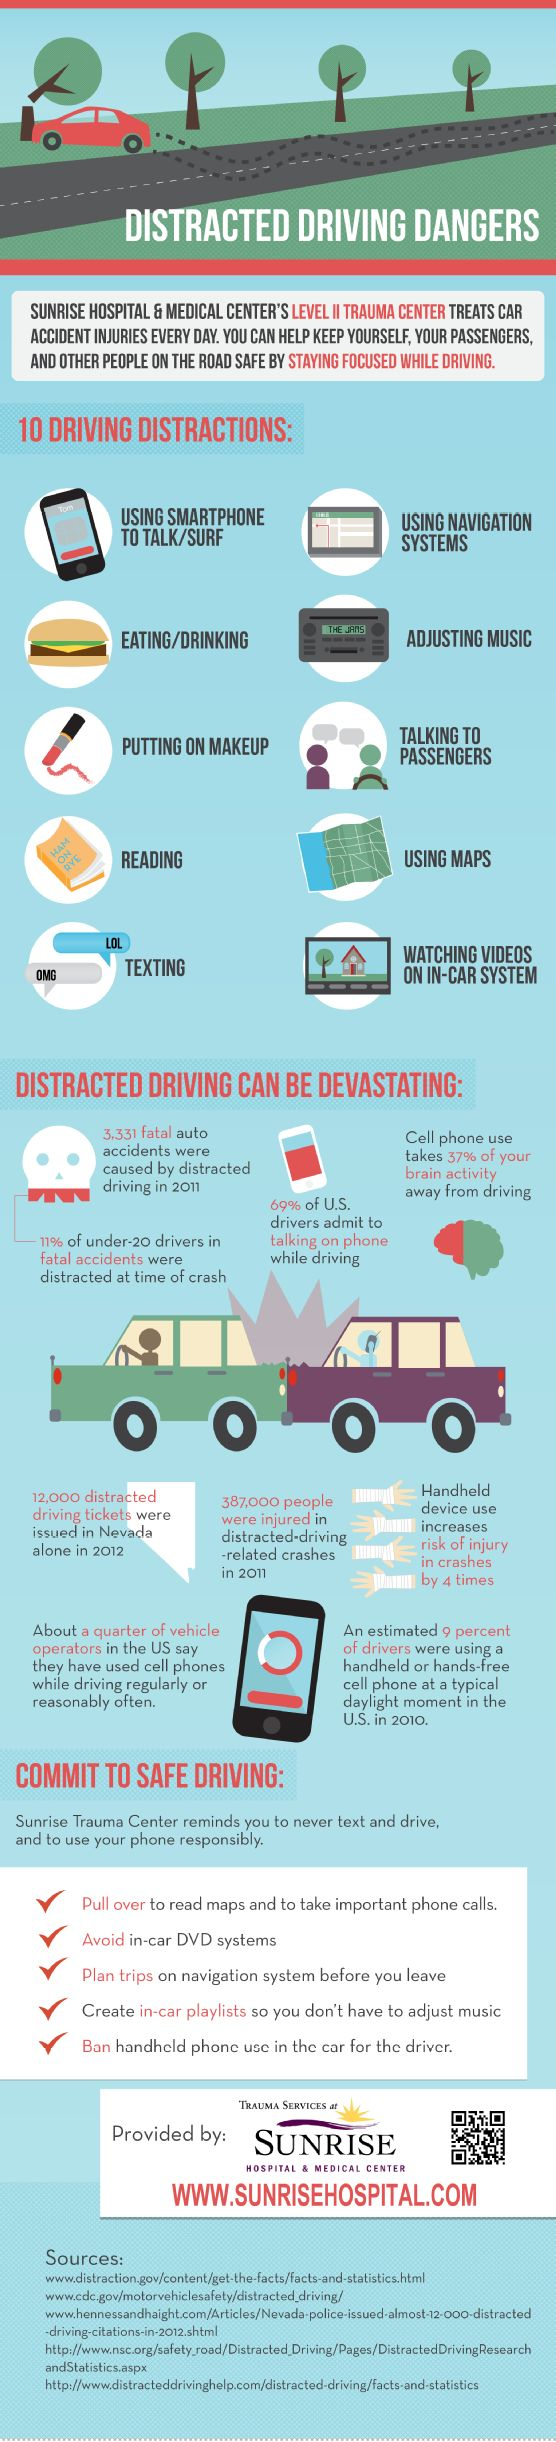 best distracted driving images distracted  texting and driving dangers essaytyper texting and driving essay examples the silent killer dangers of texting and driving should texting while driving